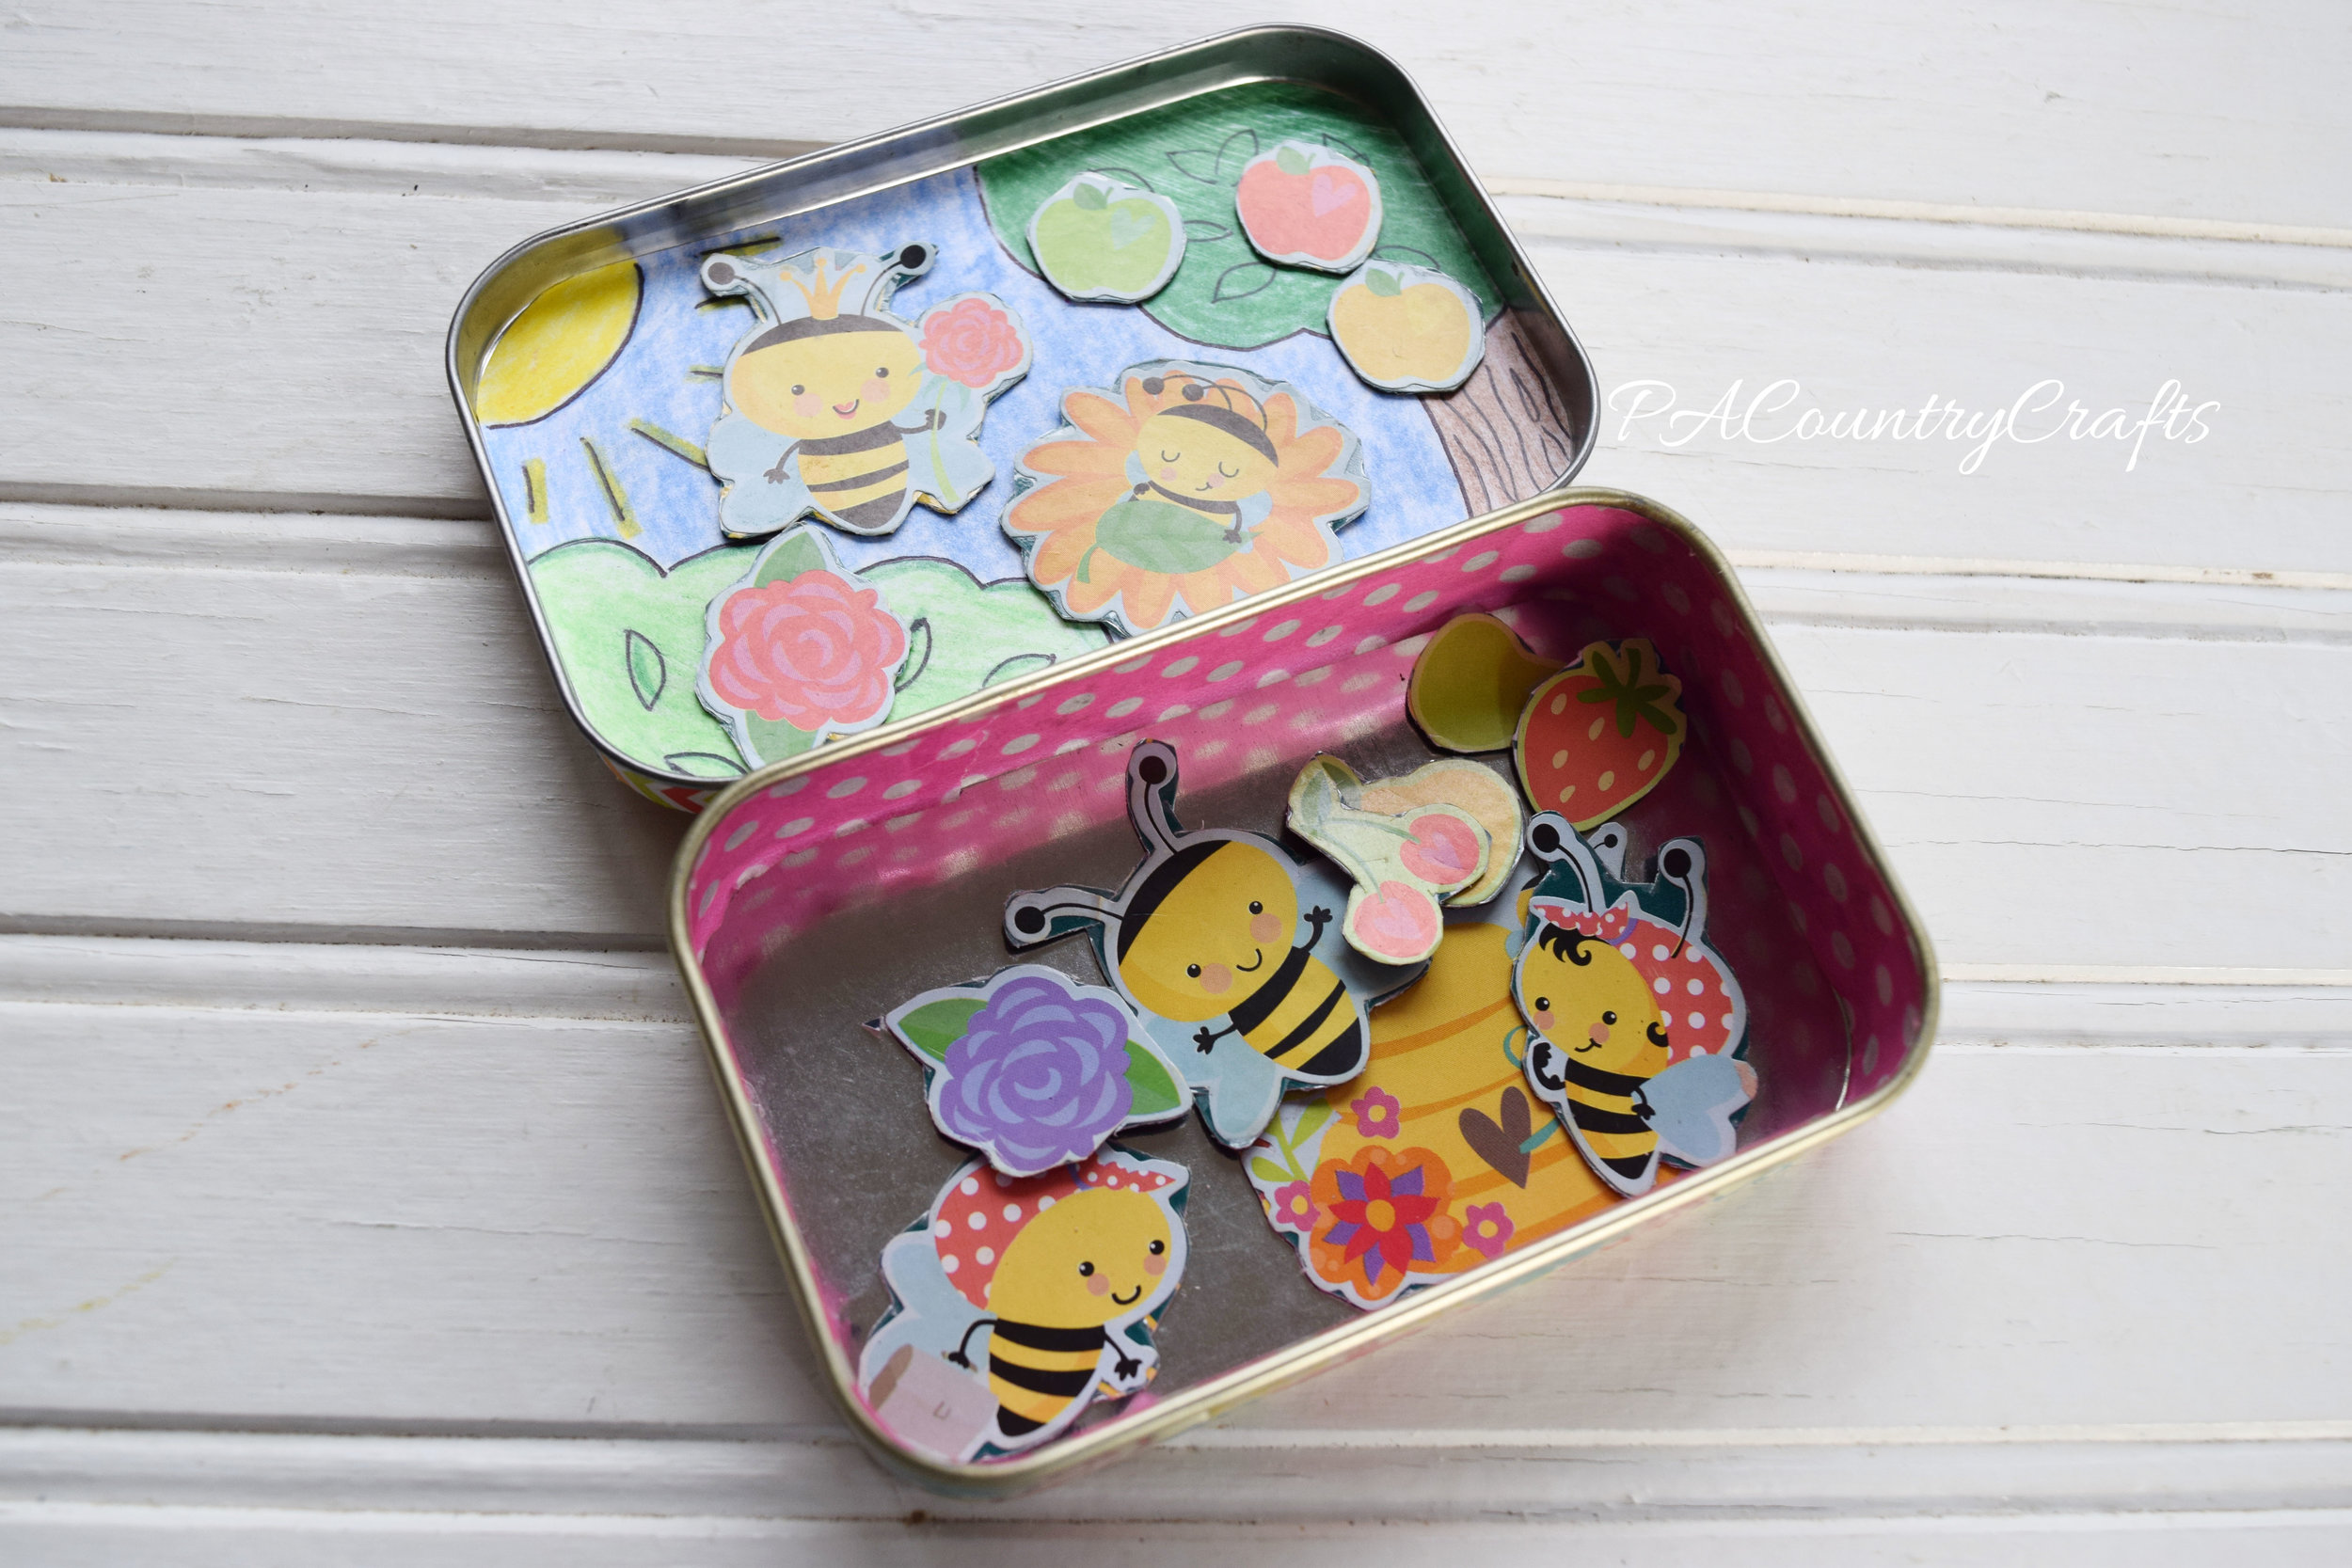 Use sticker sets, free magnets, and old mint tins to make a playset for the kids!